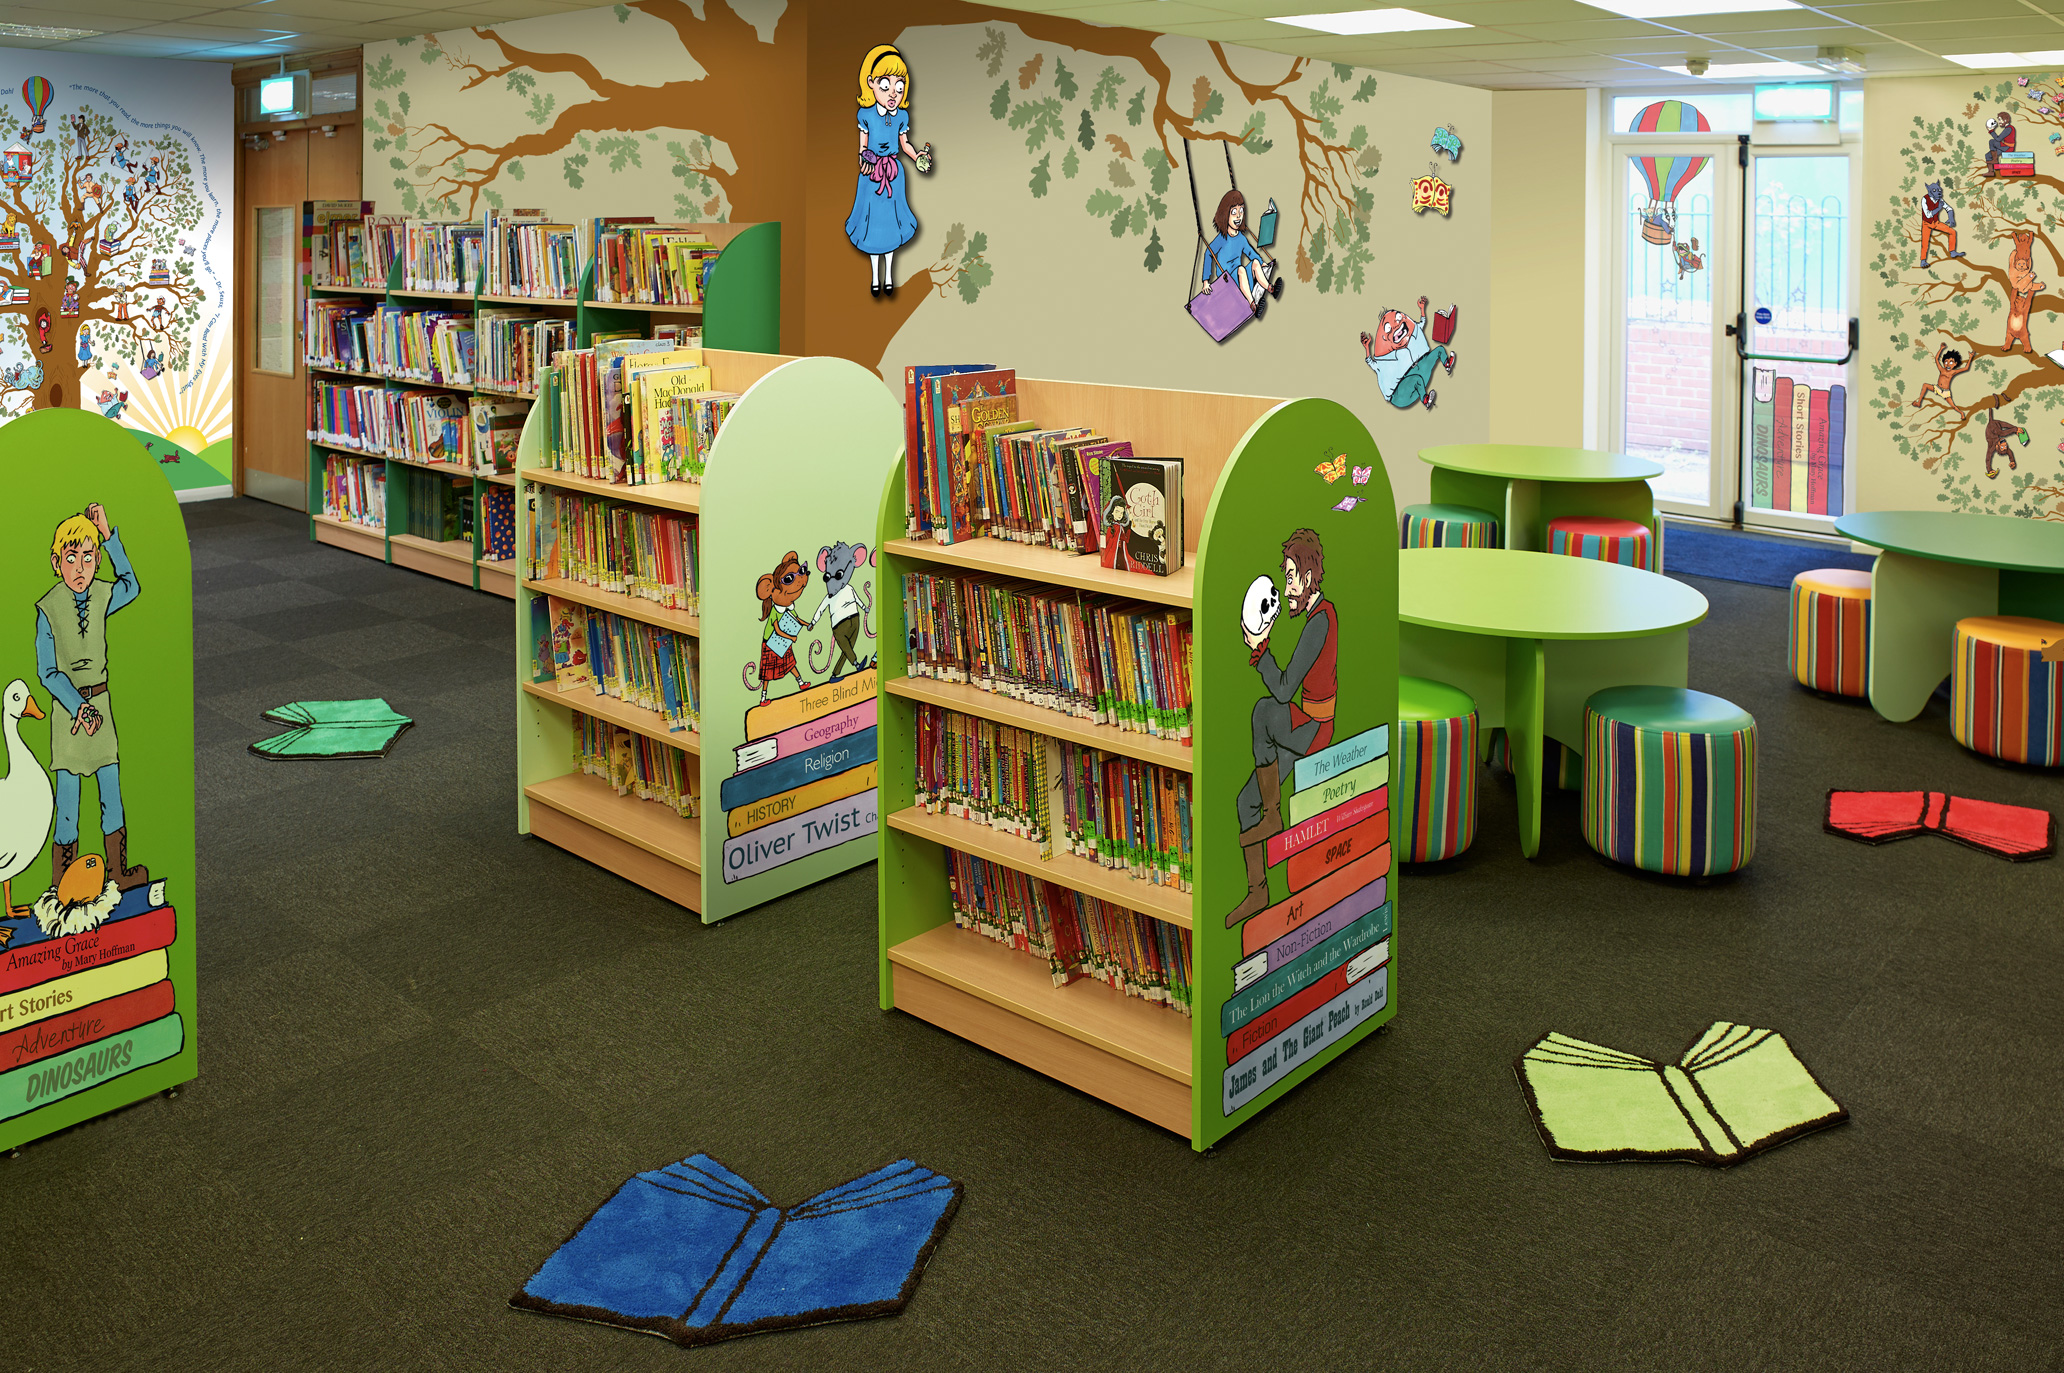 Classroom Ideas Display ~ Classroom reading area library displays the magical